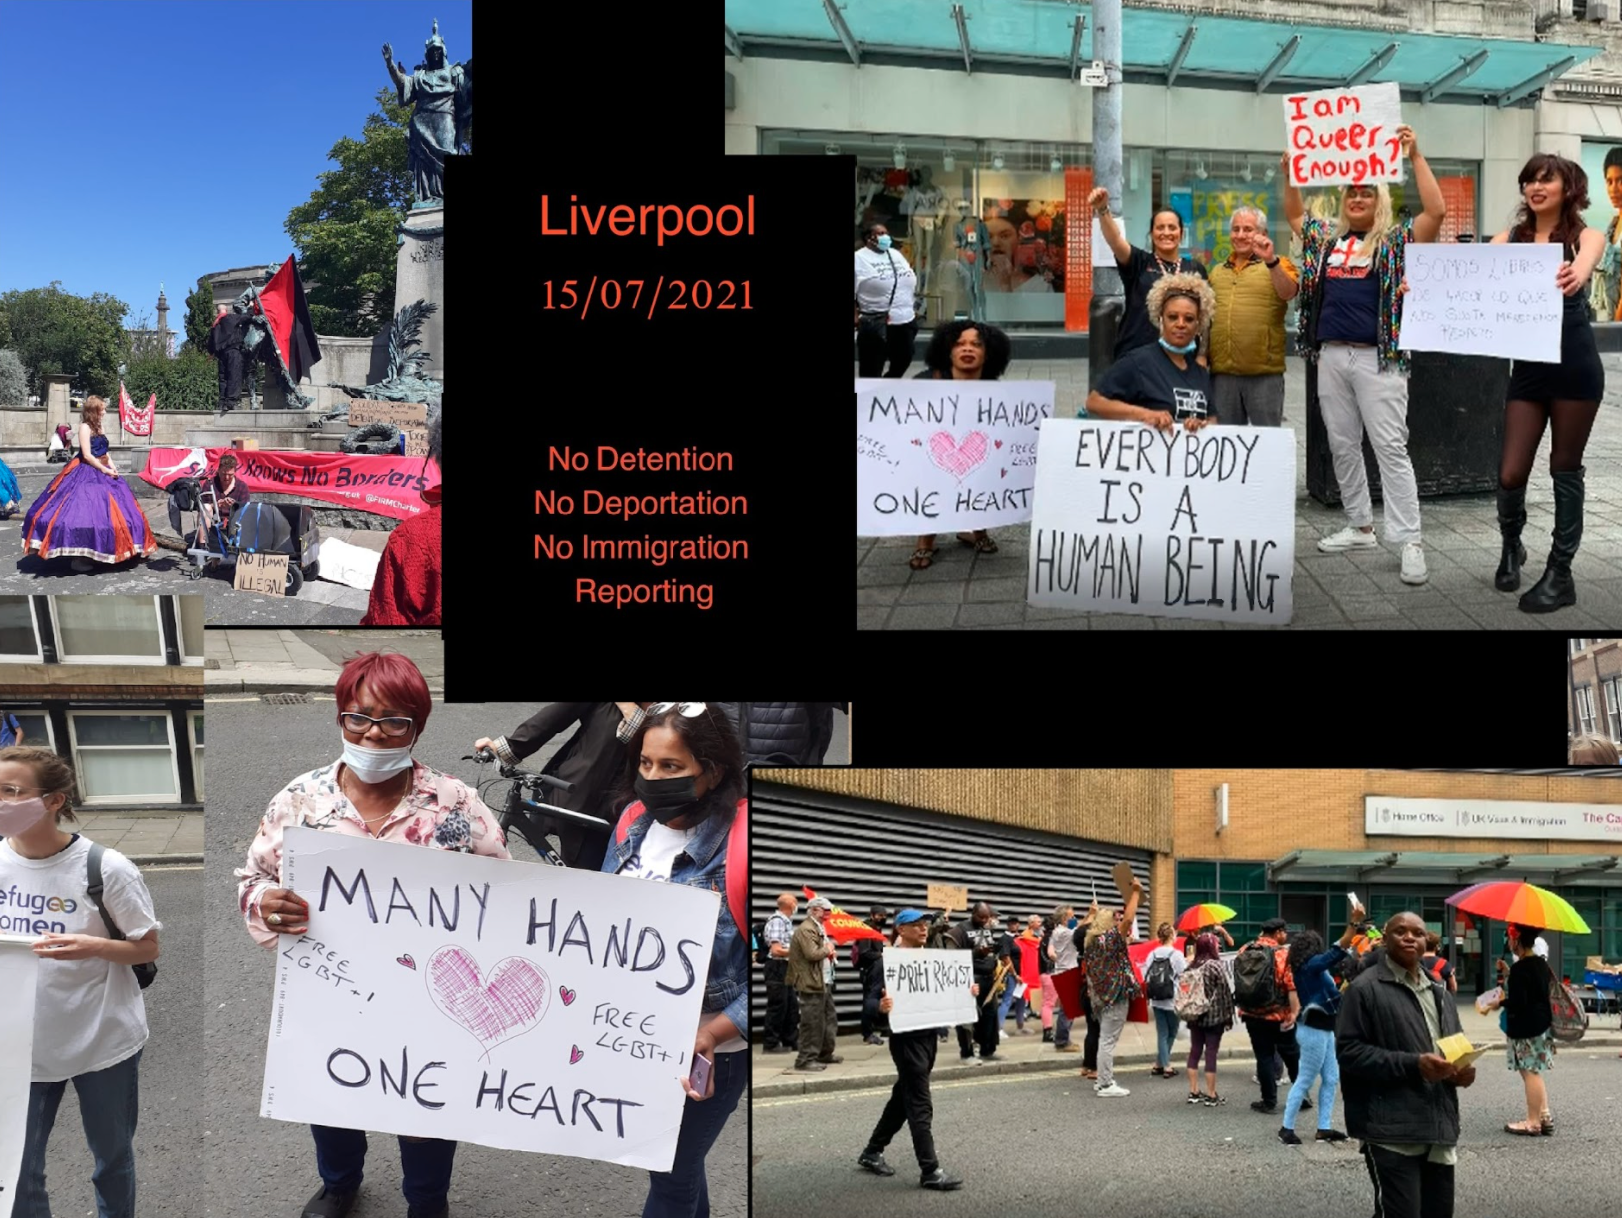 Demonstration in Liverpool